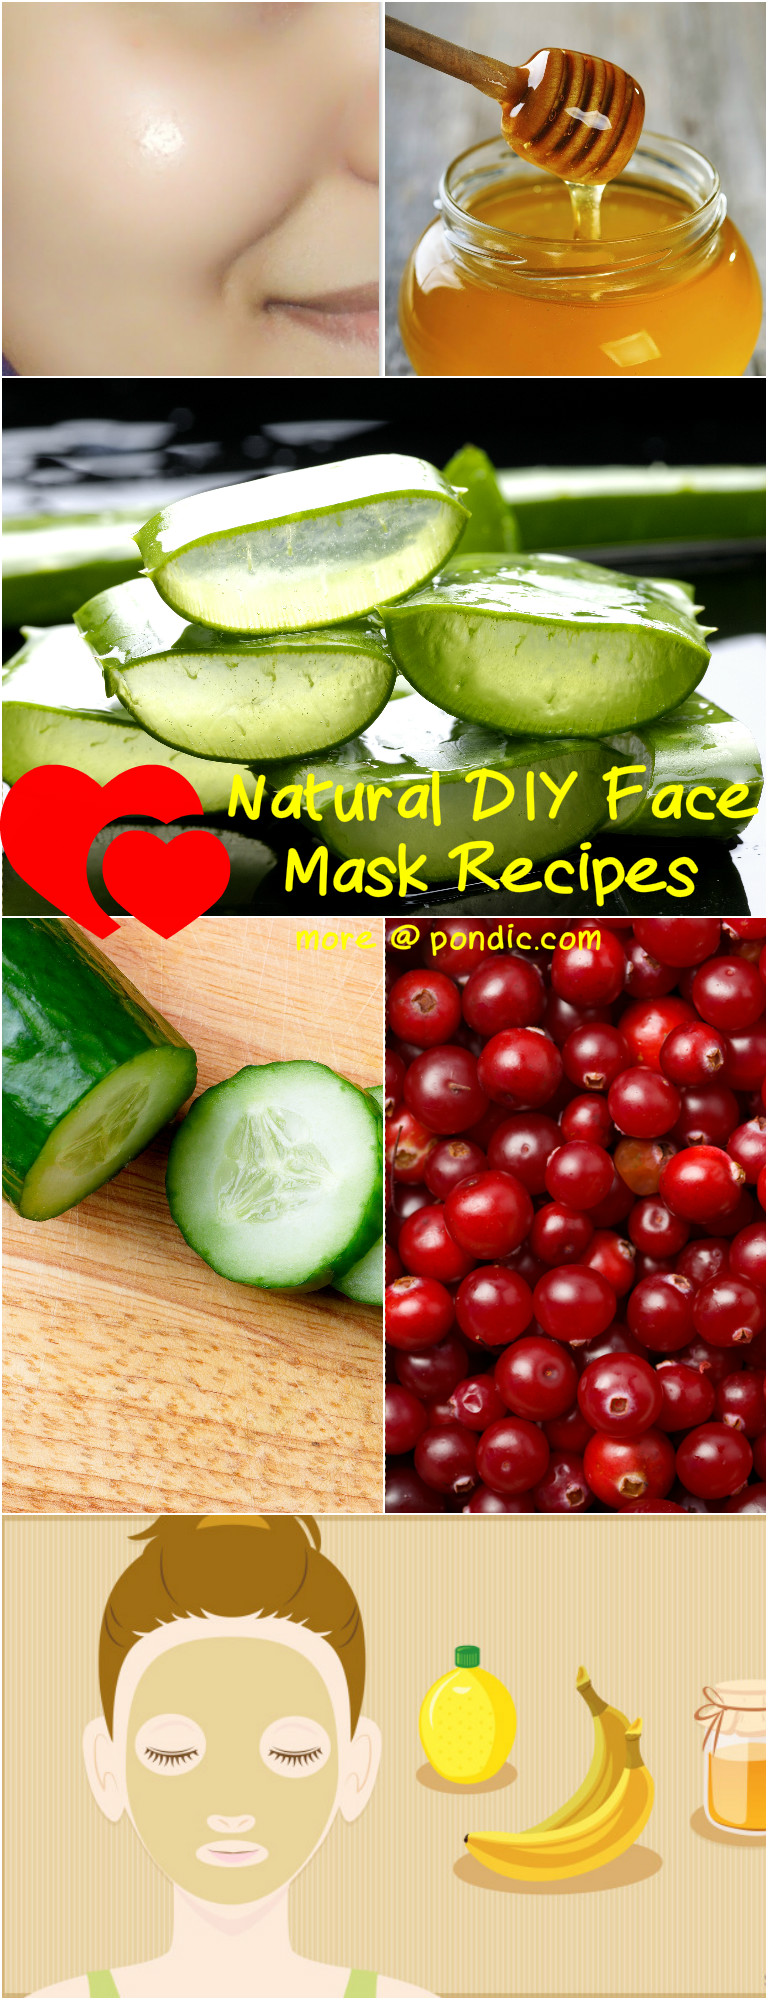 These Outstanding Recipes Are Guaranteed toMake Your Skin Smooth and Radiant inNoTime